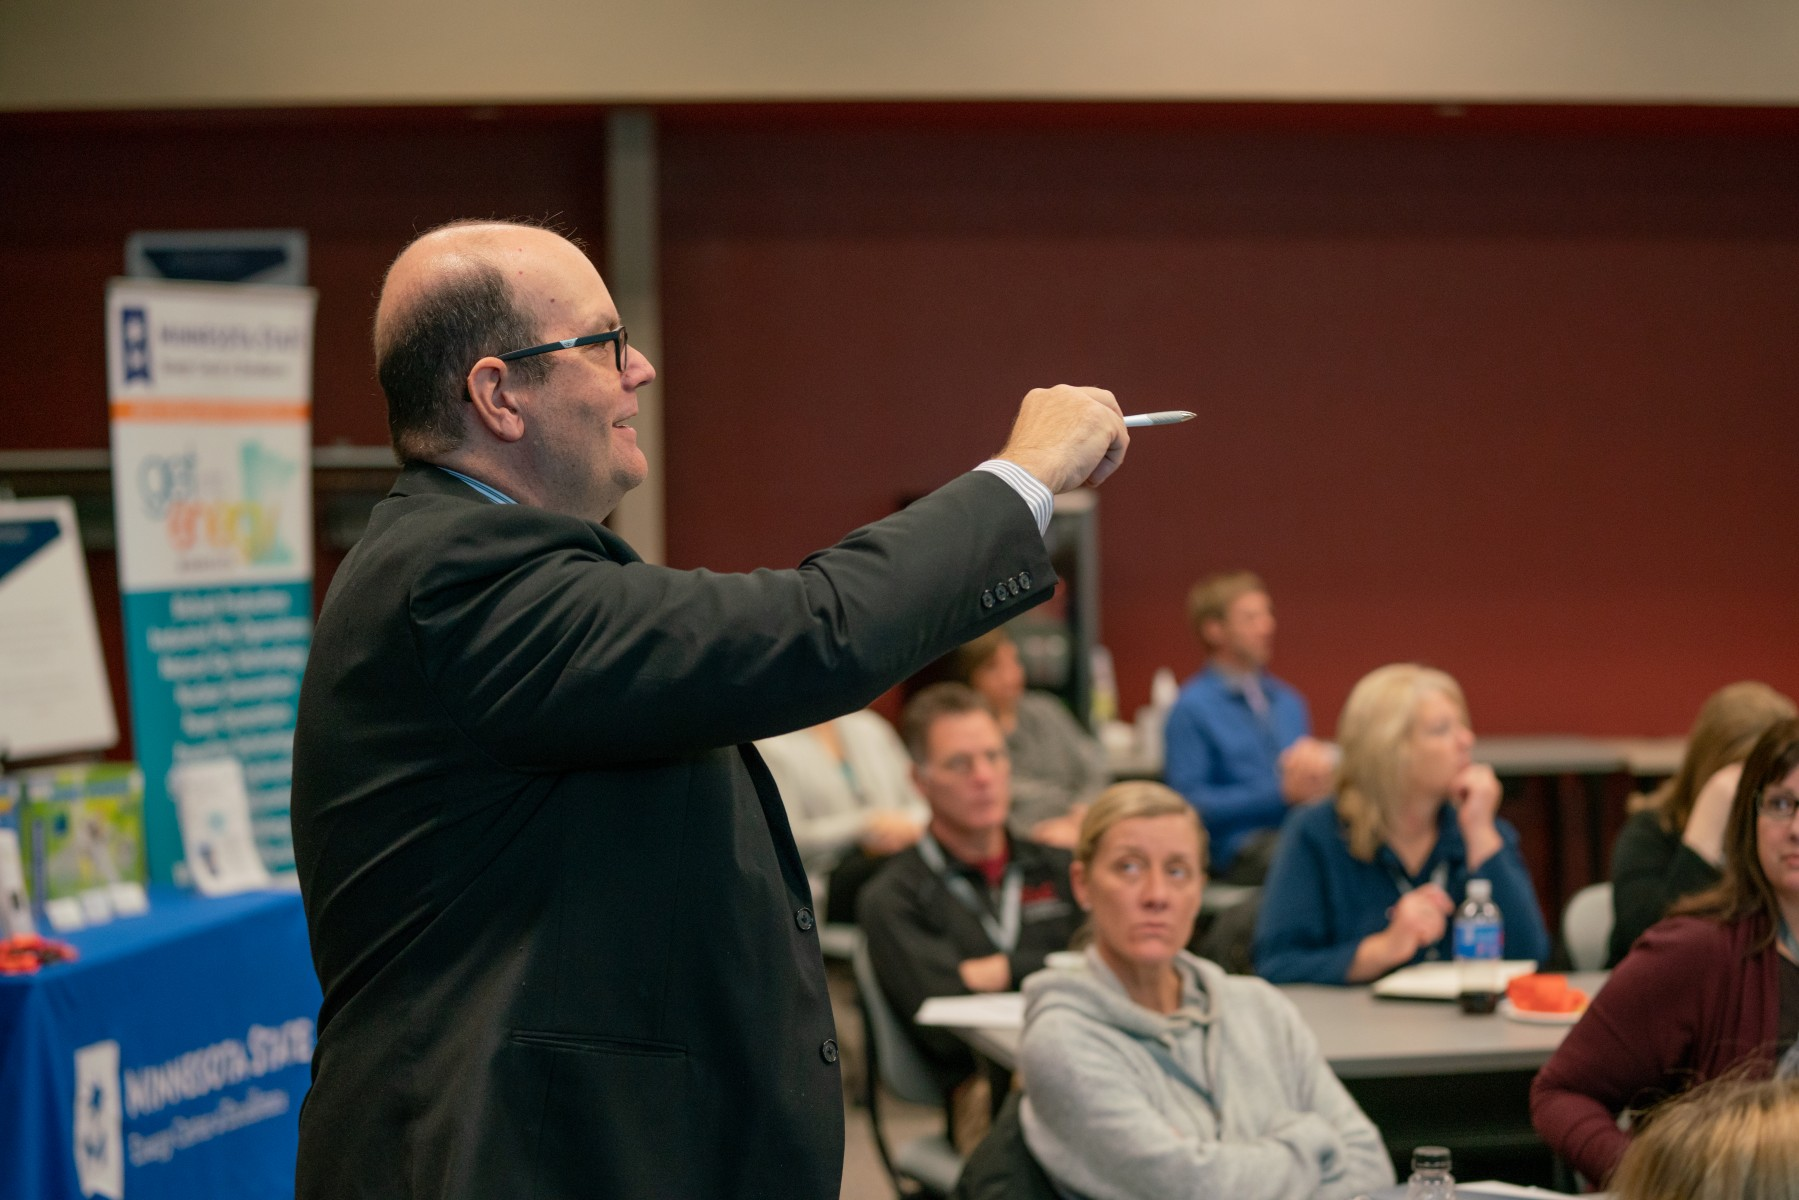 Bart Graves addresses attendees at the 21st Century Workforce Conference at Sourcewell on November 16.